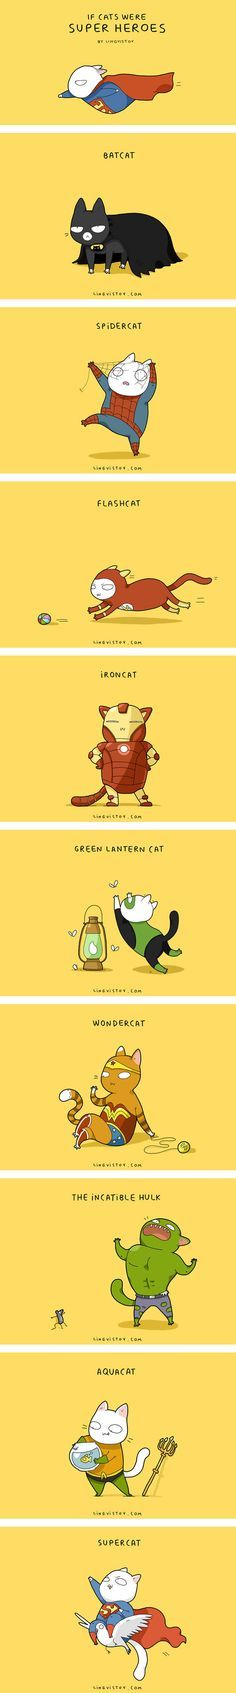 If Cats Were Superheroes, It Would Be Pawesome.